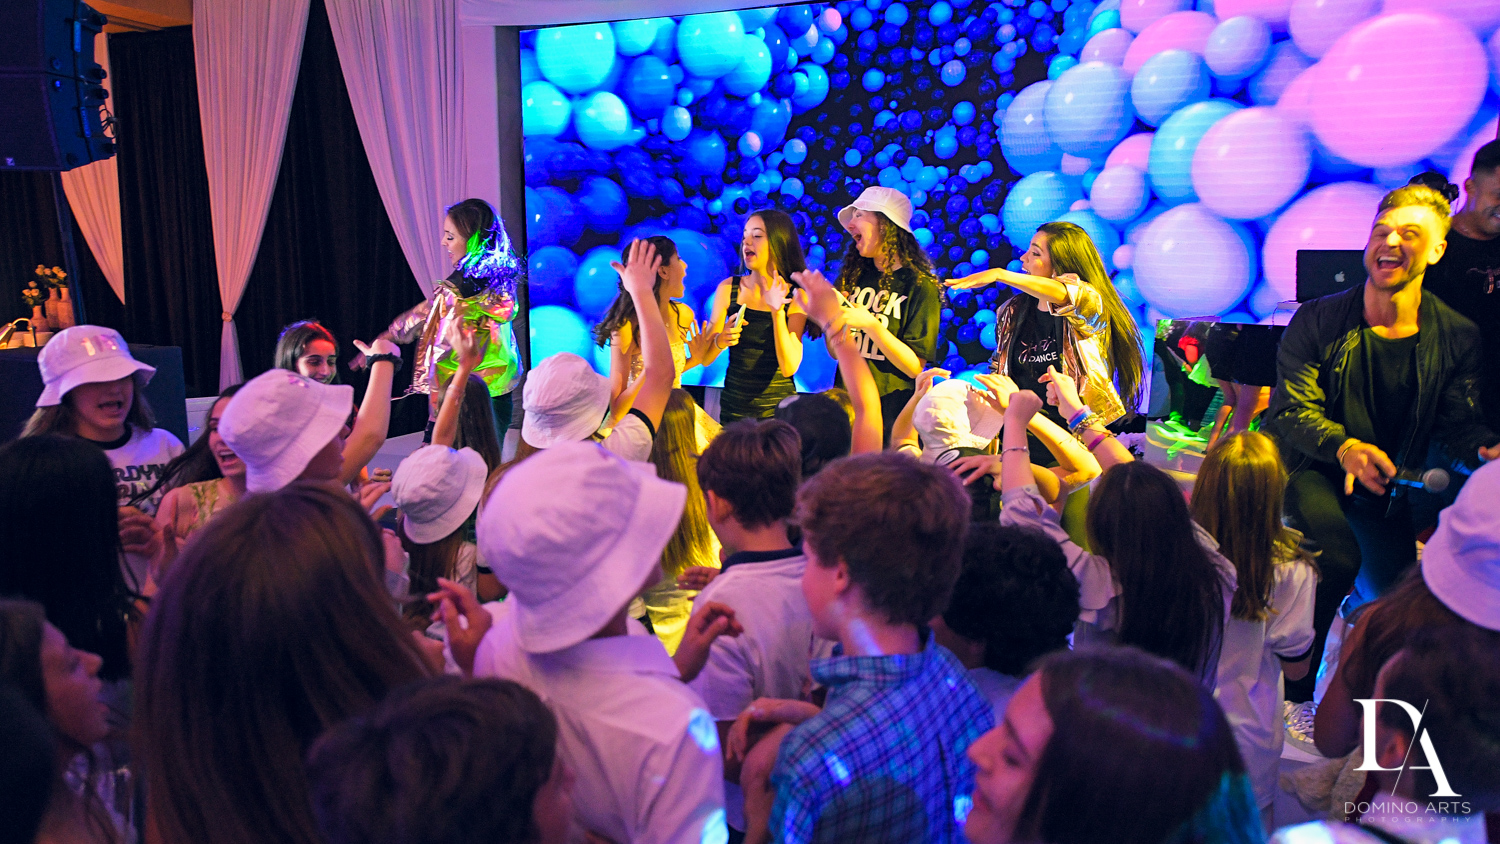 dancing at Masquerade Ball Bat Mitzvah at Ritz Carlton Fort Lauderdale by Domino Arts Photography